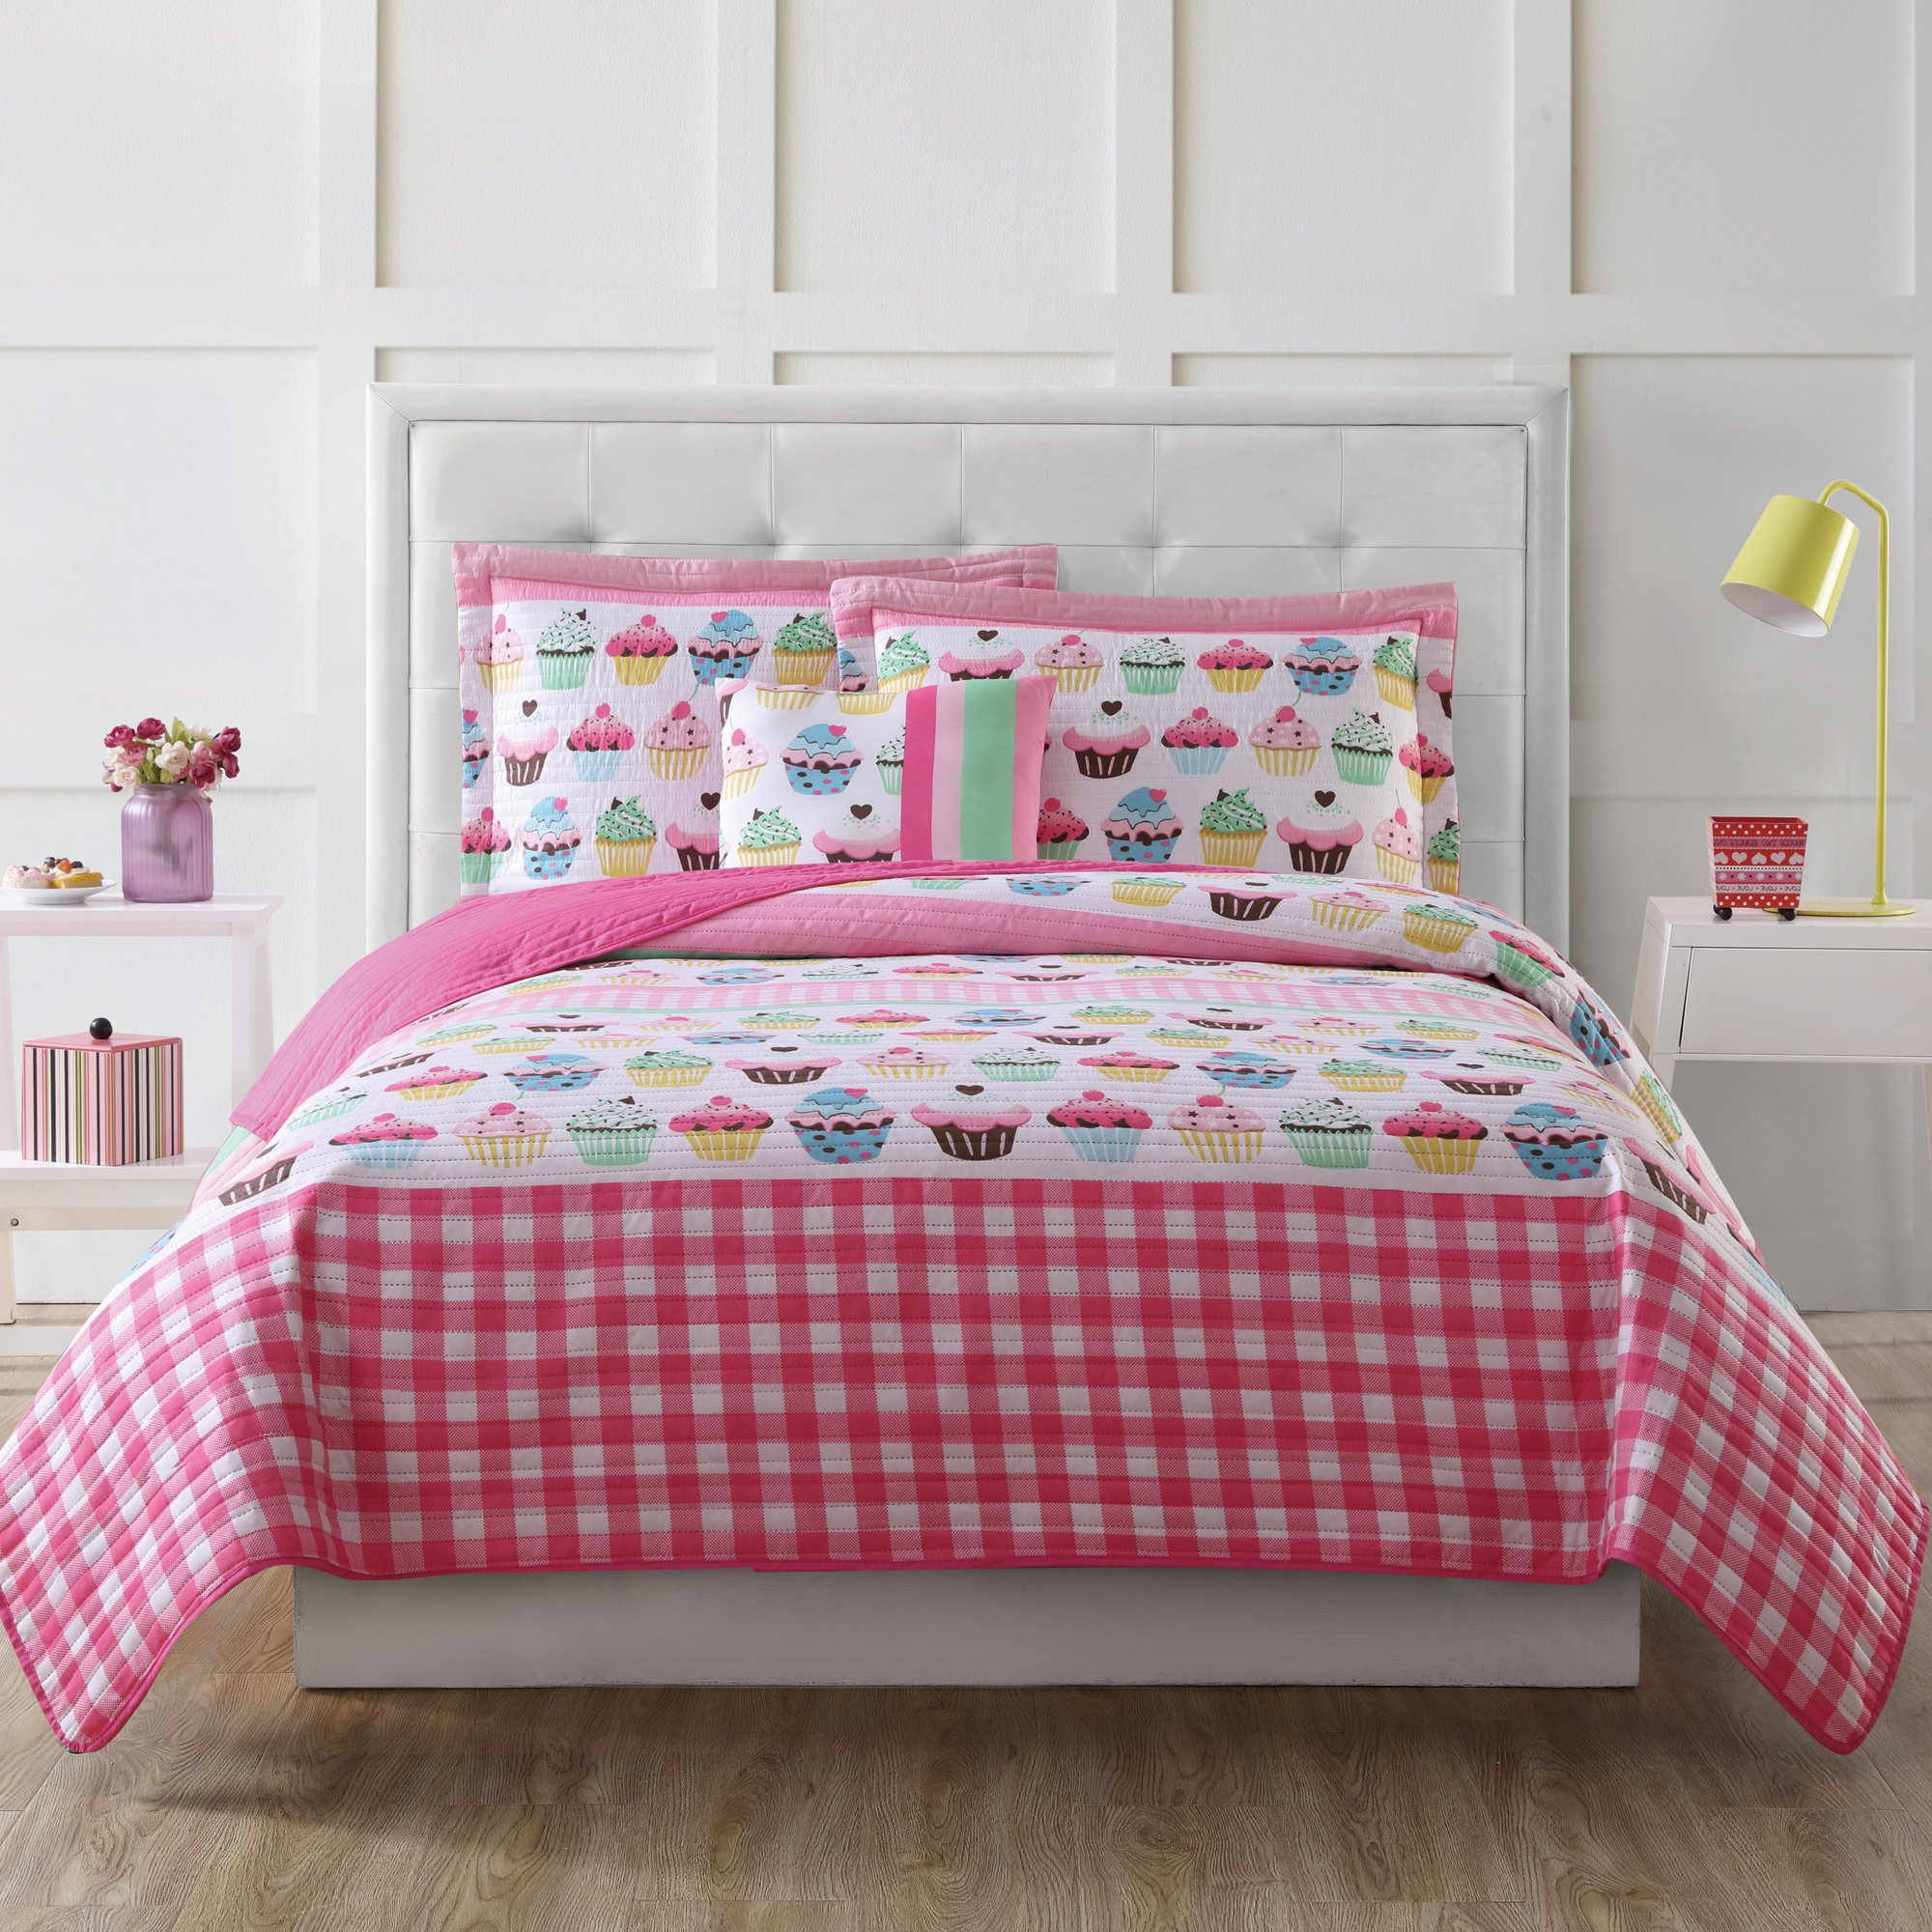 3 Piece Girl Pink White Gingham Cupcake Theme Quilt Twin Set, Girly Multi Cup Cake Desert Bedding, Cute All Over Plaid Themed Pattern, Blue Green Yellow, Microfiber